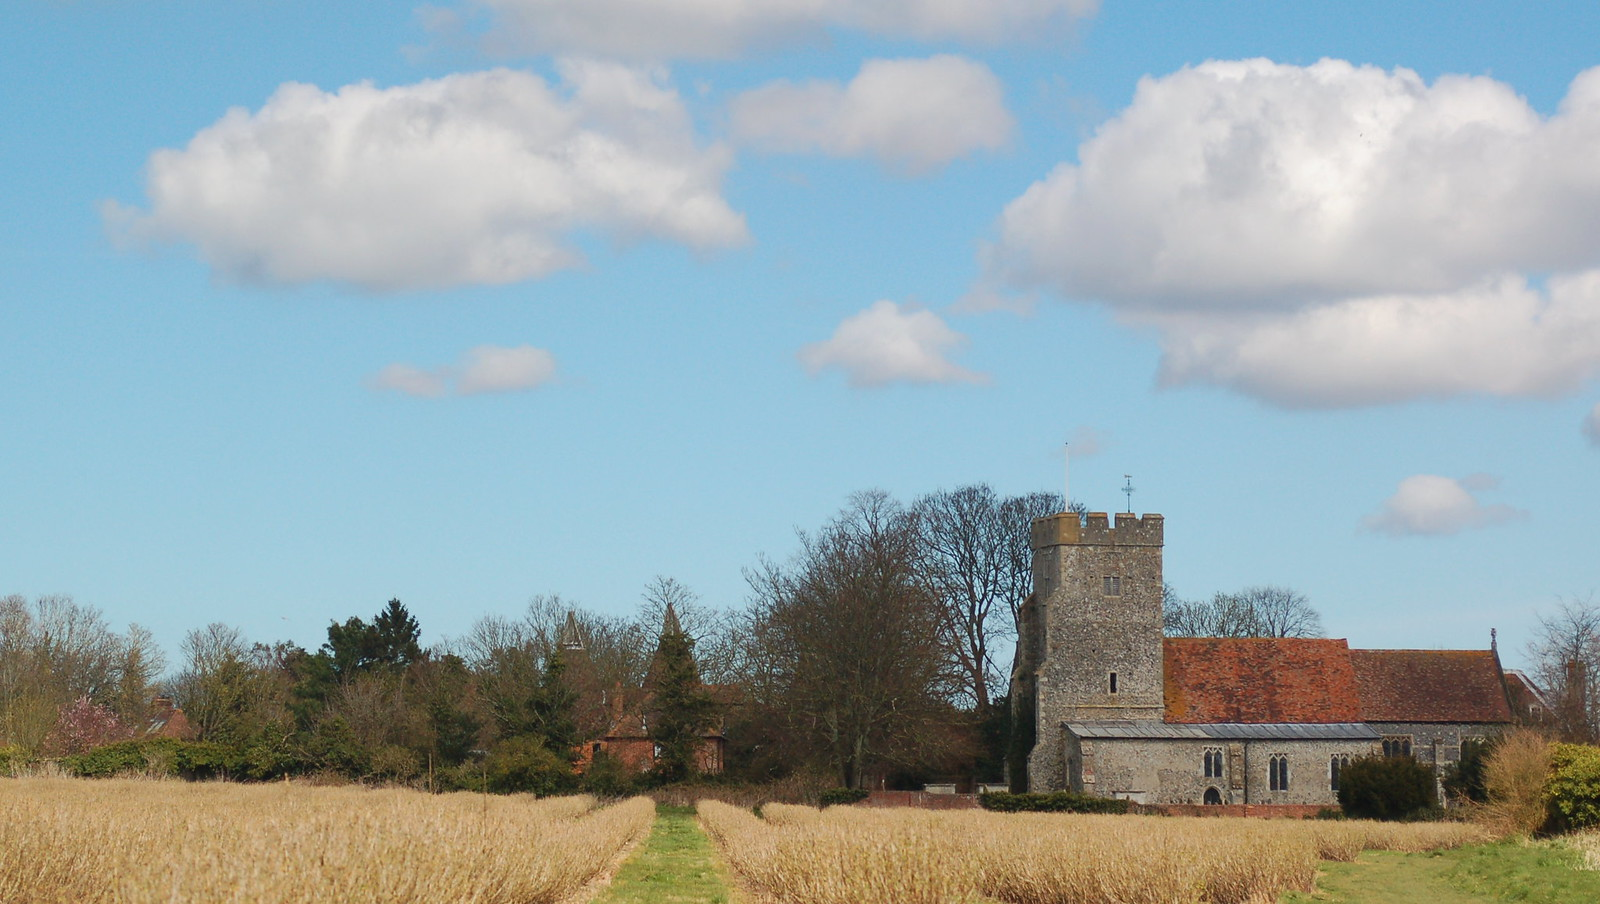 wickhambreaux church